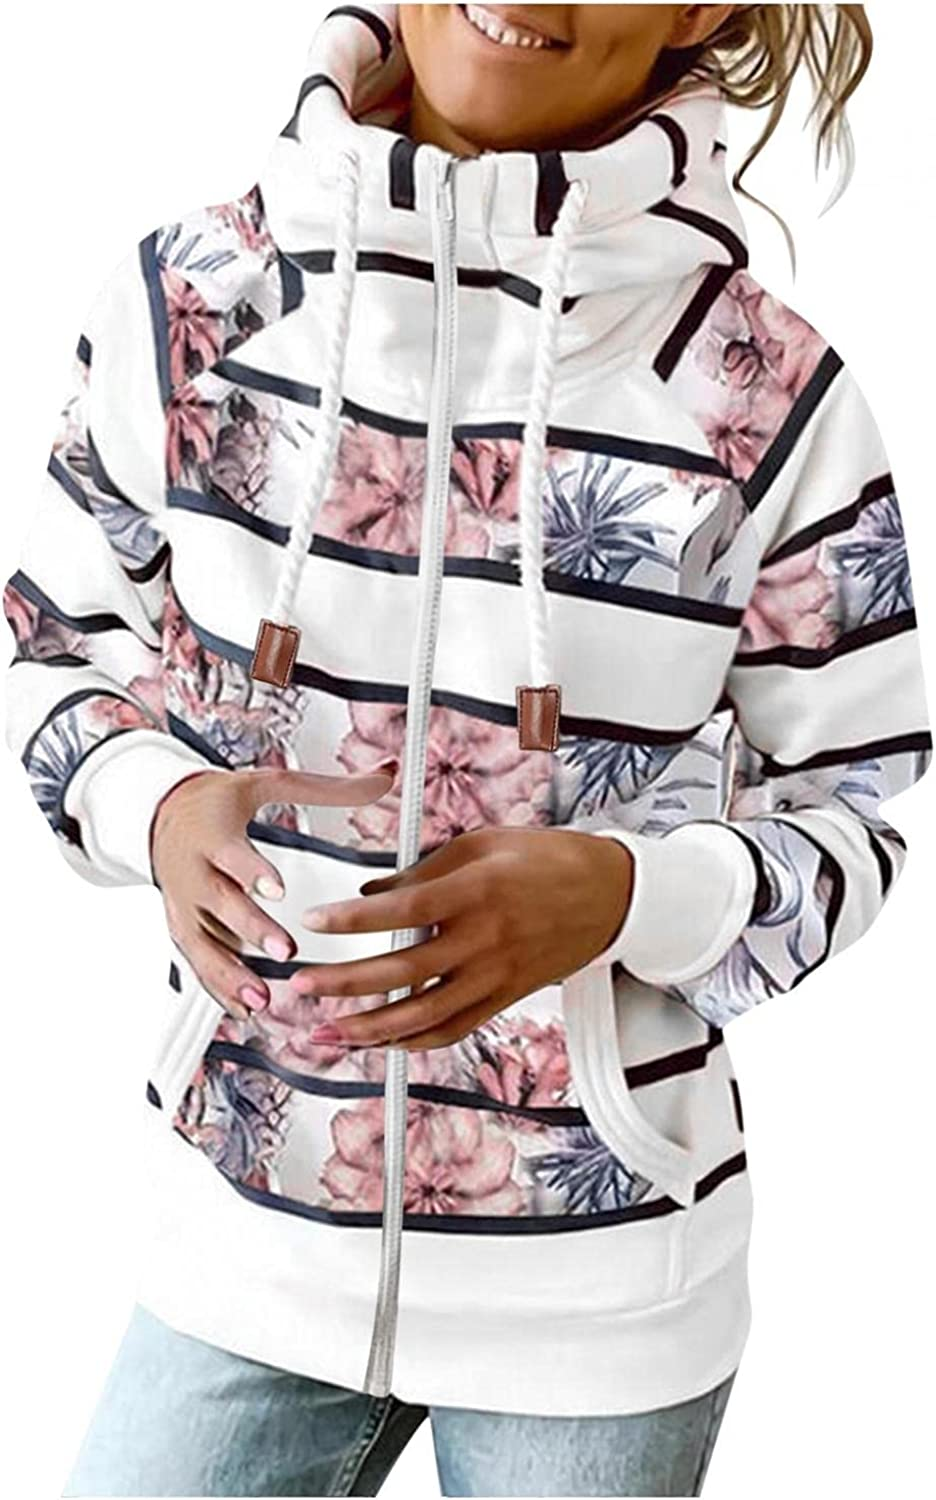 Womens Hoodies,Women's Fashion Hoodies & Sweatshirts Plus Size Trendy with Pockets Stripes Graphic Pullover